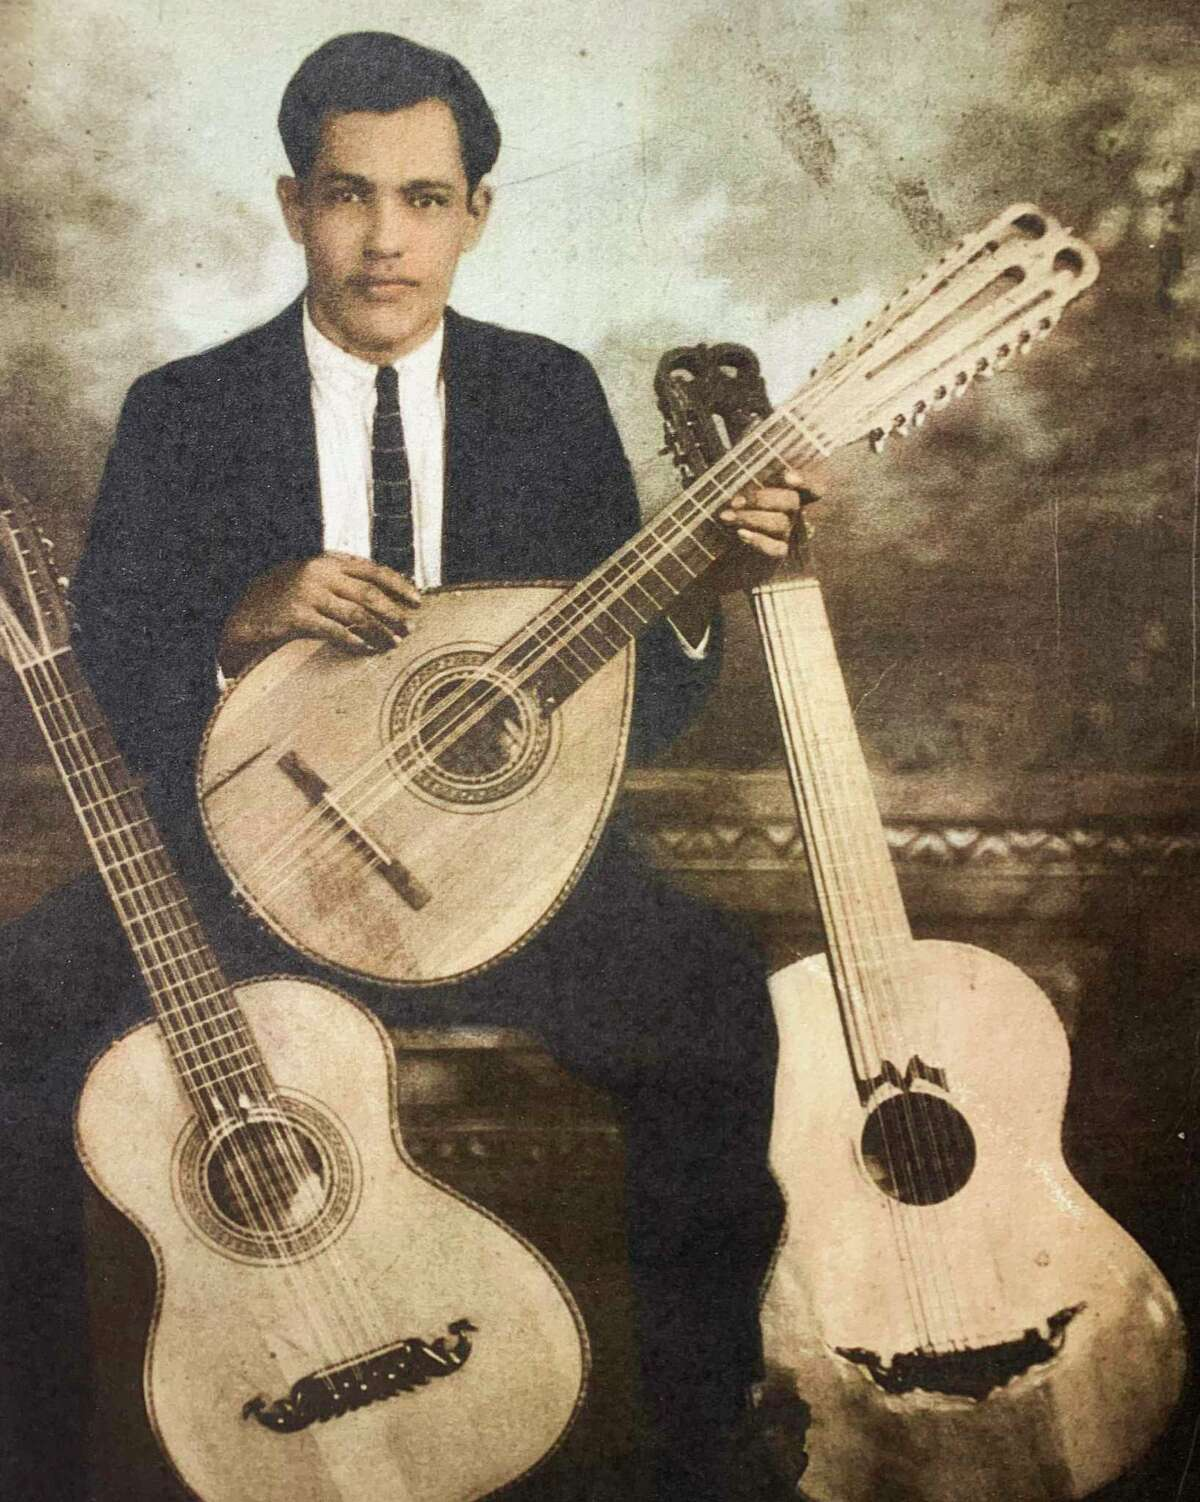 This is a picture of Martin Macias, the grandfather of bajo sexto maker George Macias.